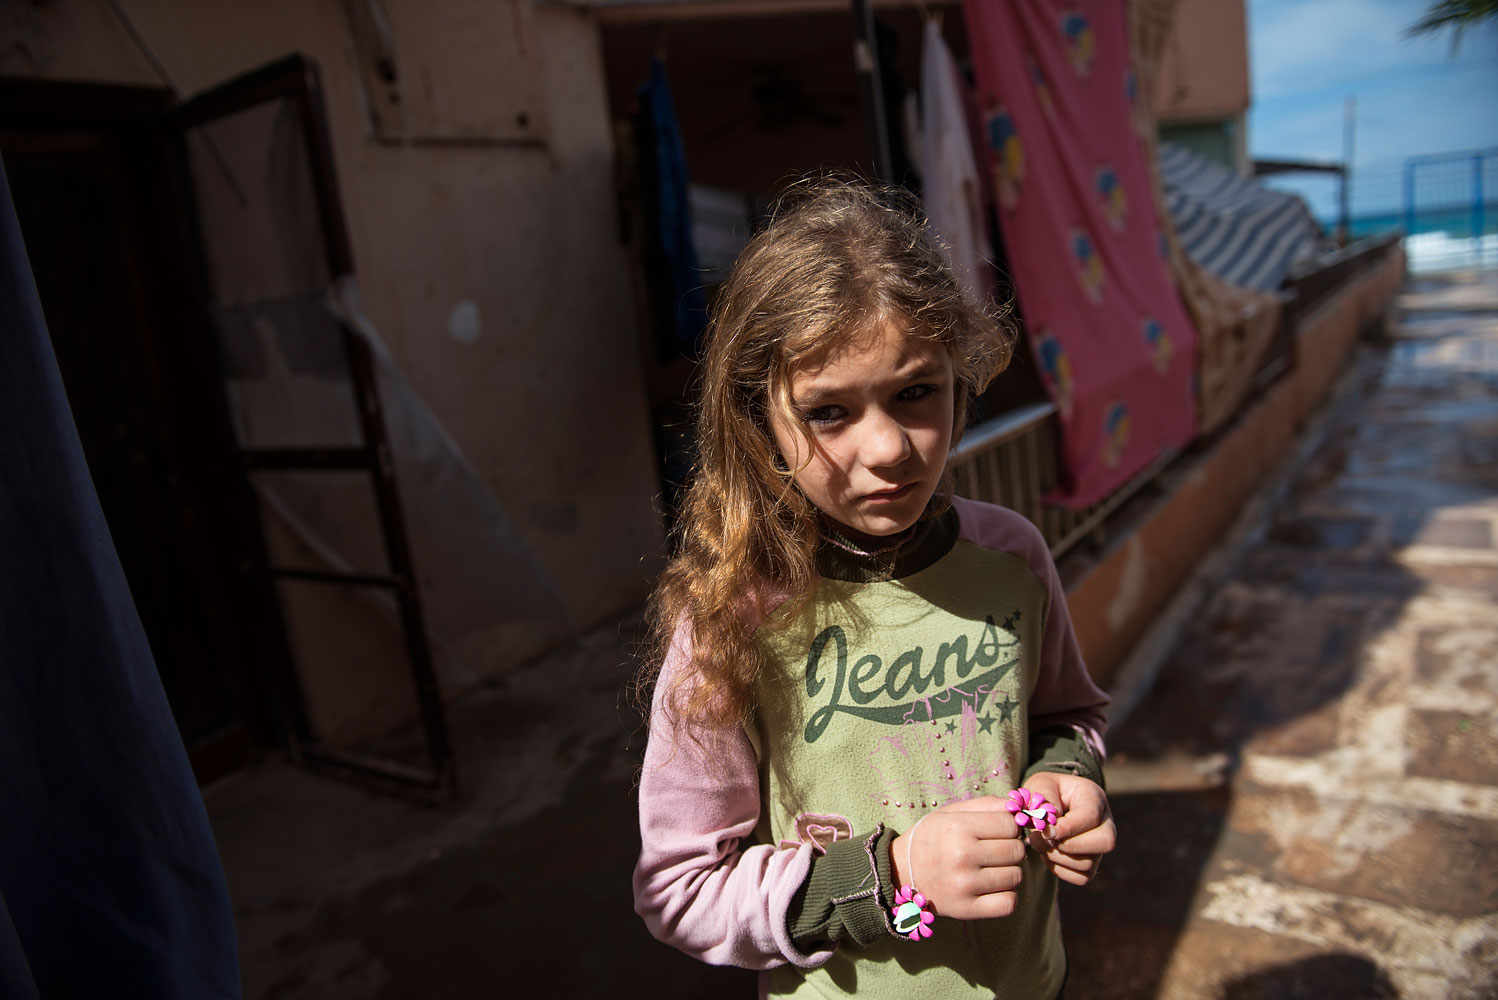 Syrian refugee Ranya, 10, from the Idlib countryside, stands outside her family's room in the Nour resort, a collective shelter that houses roughly 500 Syrian refugees in Tripoli, in North Lebanon. Ranya and her family fled Idlib about one year ago after the bombing intensified. She has been out of school for three years.